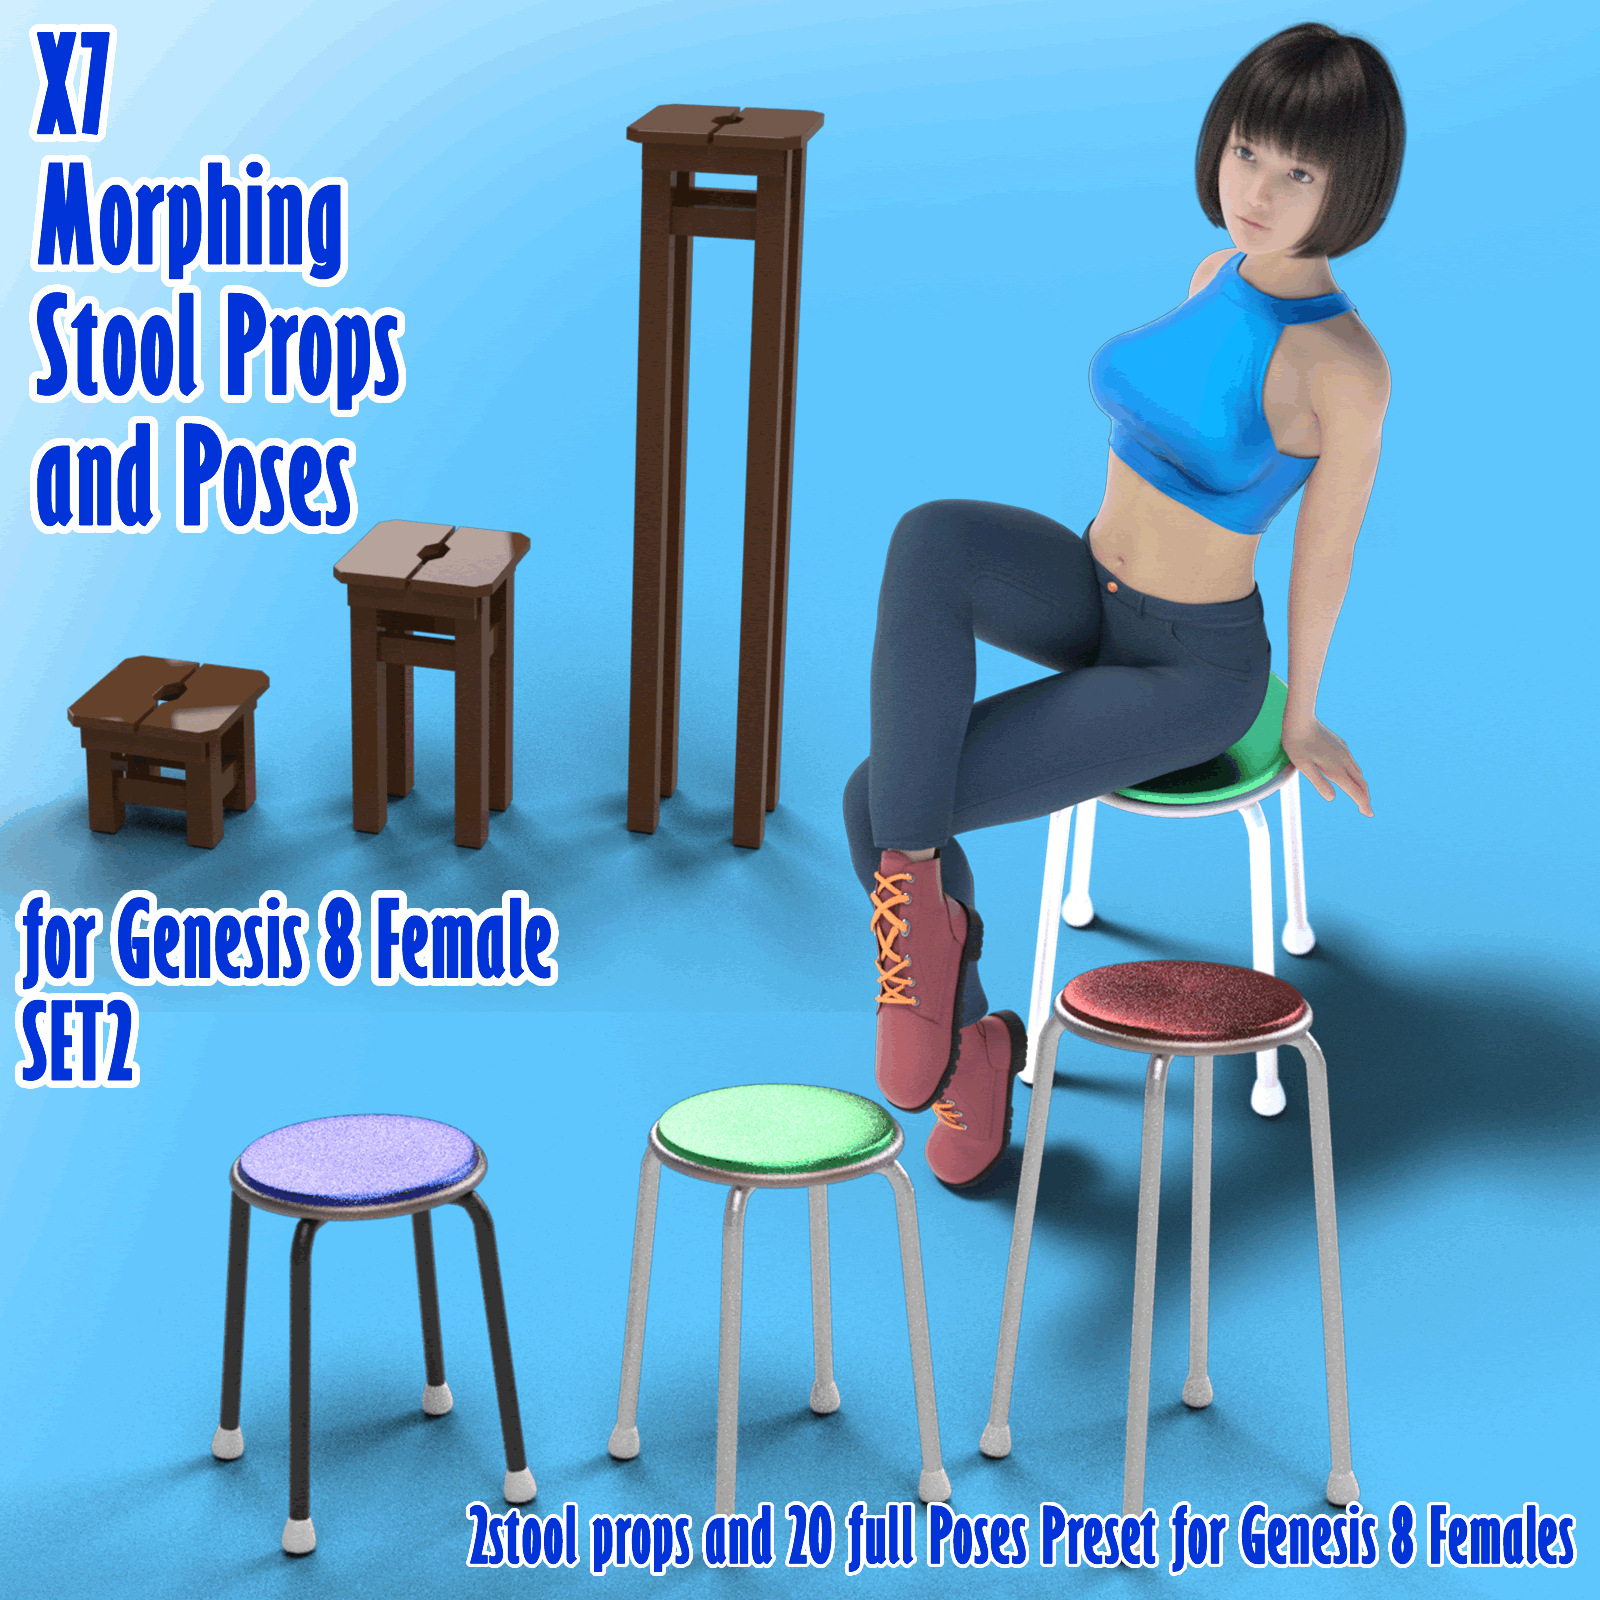 X7 Morphing Stool Props and Poses for Genesis 8 Female SET2 by x7